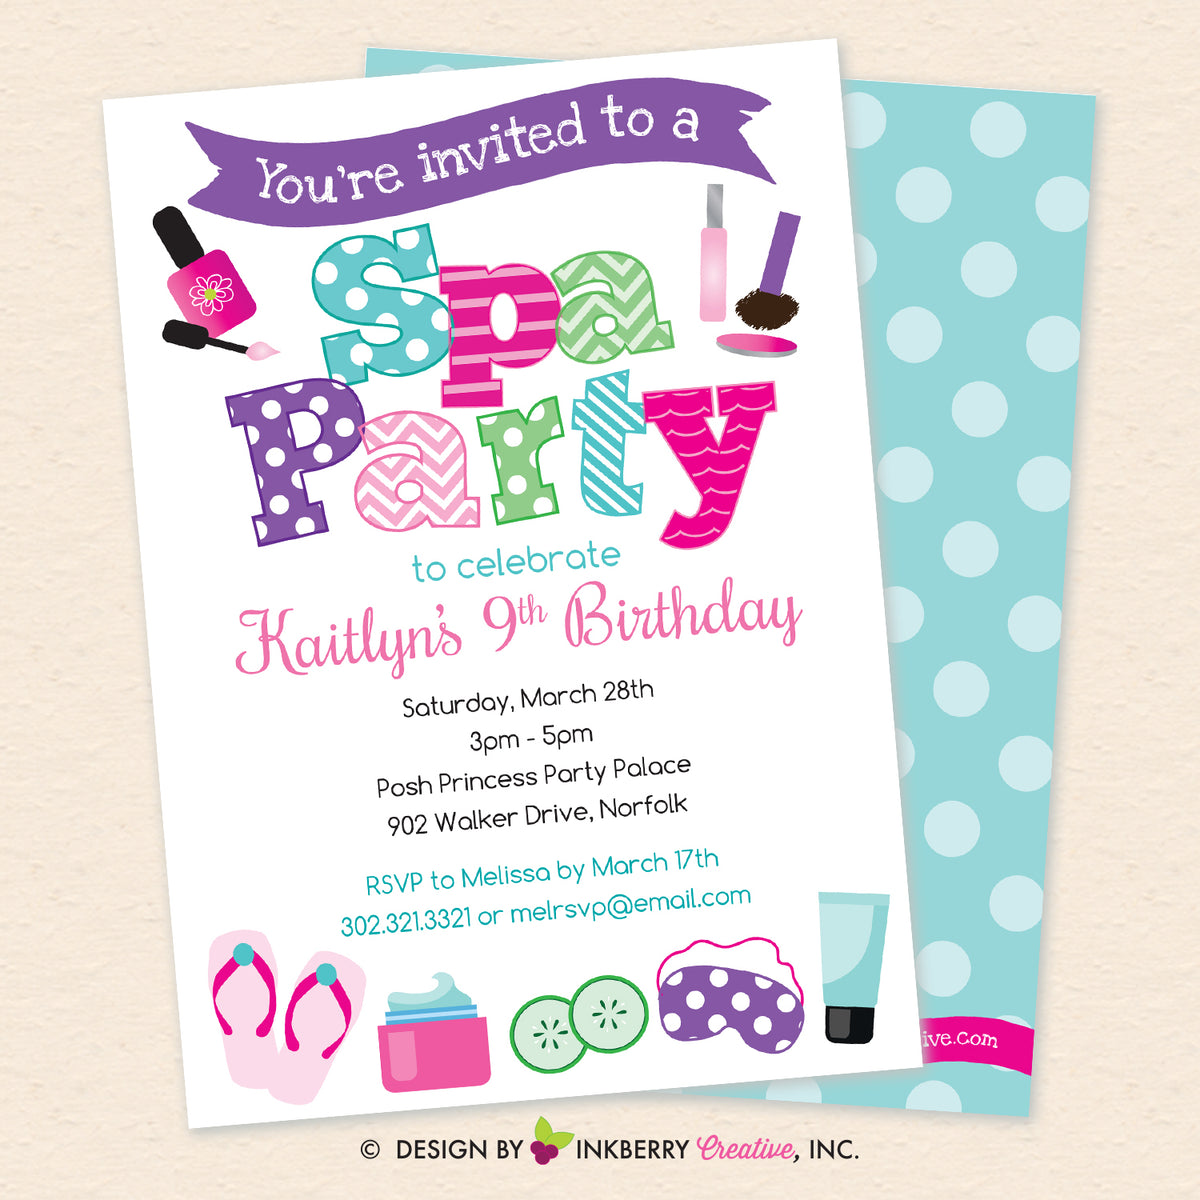 photograph regarding Birthday Party Invitations Printable titled Spa Birthday Get together Invitation - Printable, Instantaneous Down load, Editable, PDF